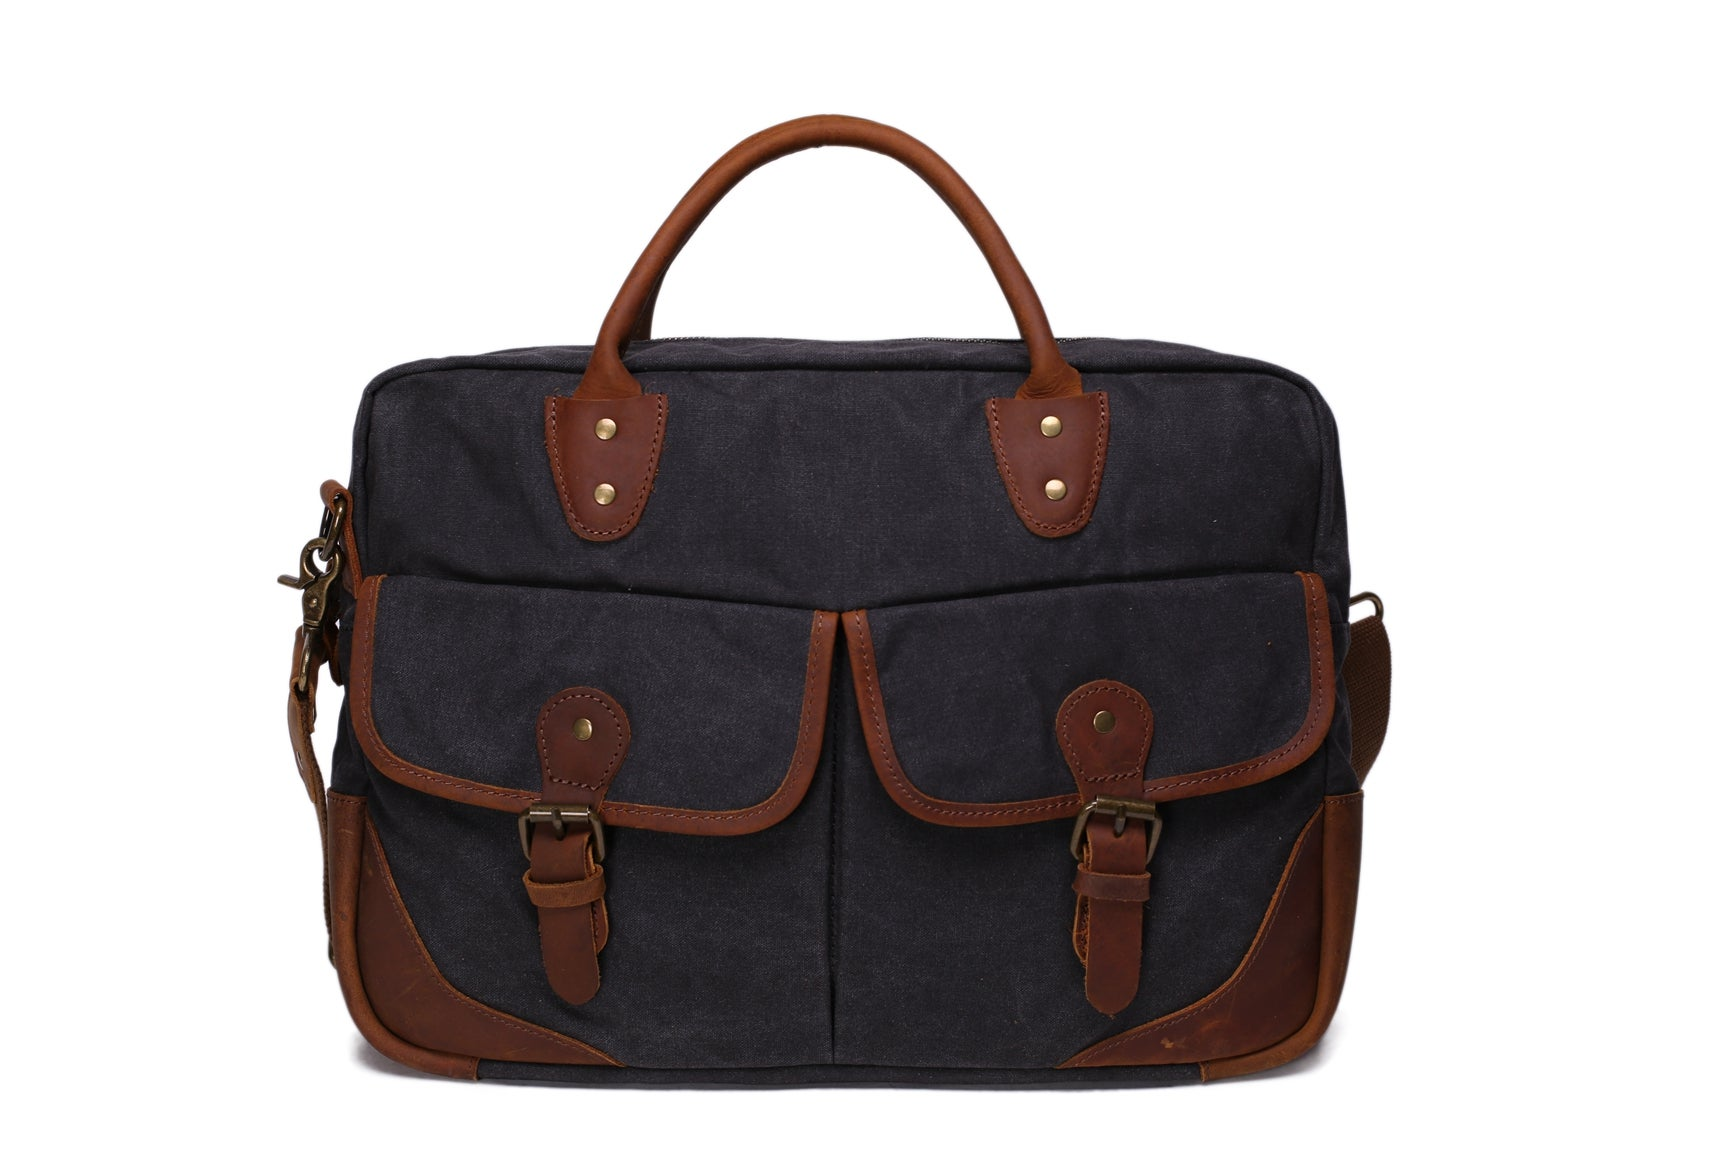 51d26b7dfd8d MoshiLeatherBag - Handmade Leather Bag Manufacturer — Waxed Canvas ...